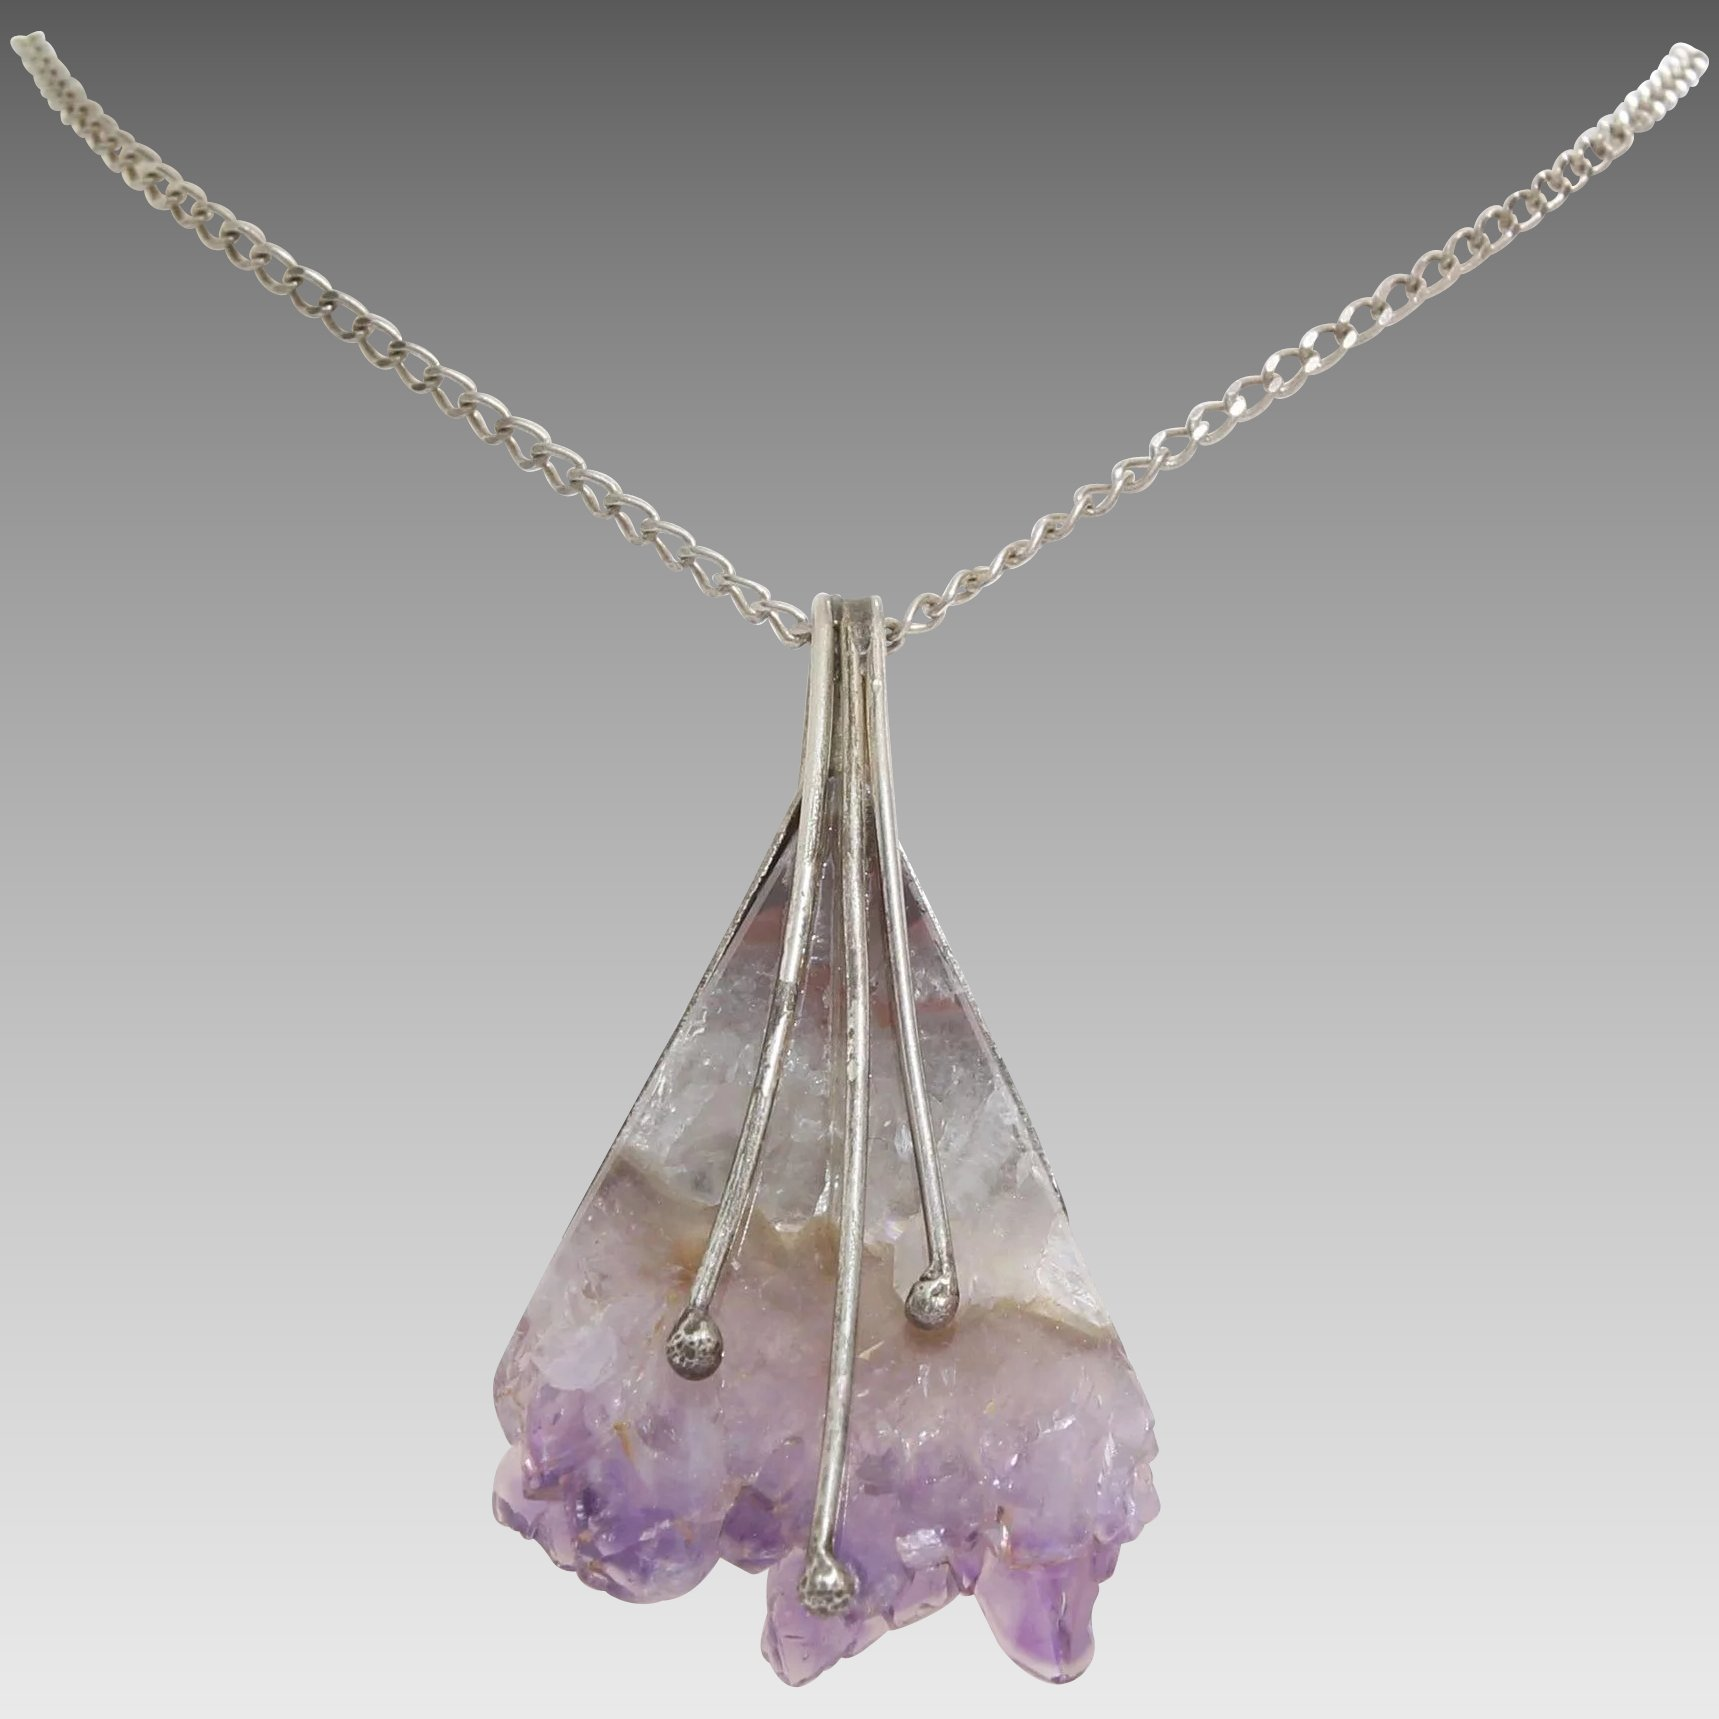 amethyst raw mineral products jewelry necklace il electroformed crystal pendant fullxfull